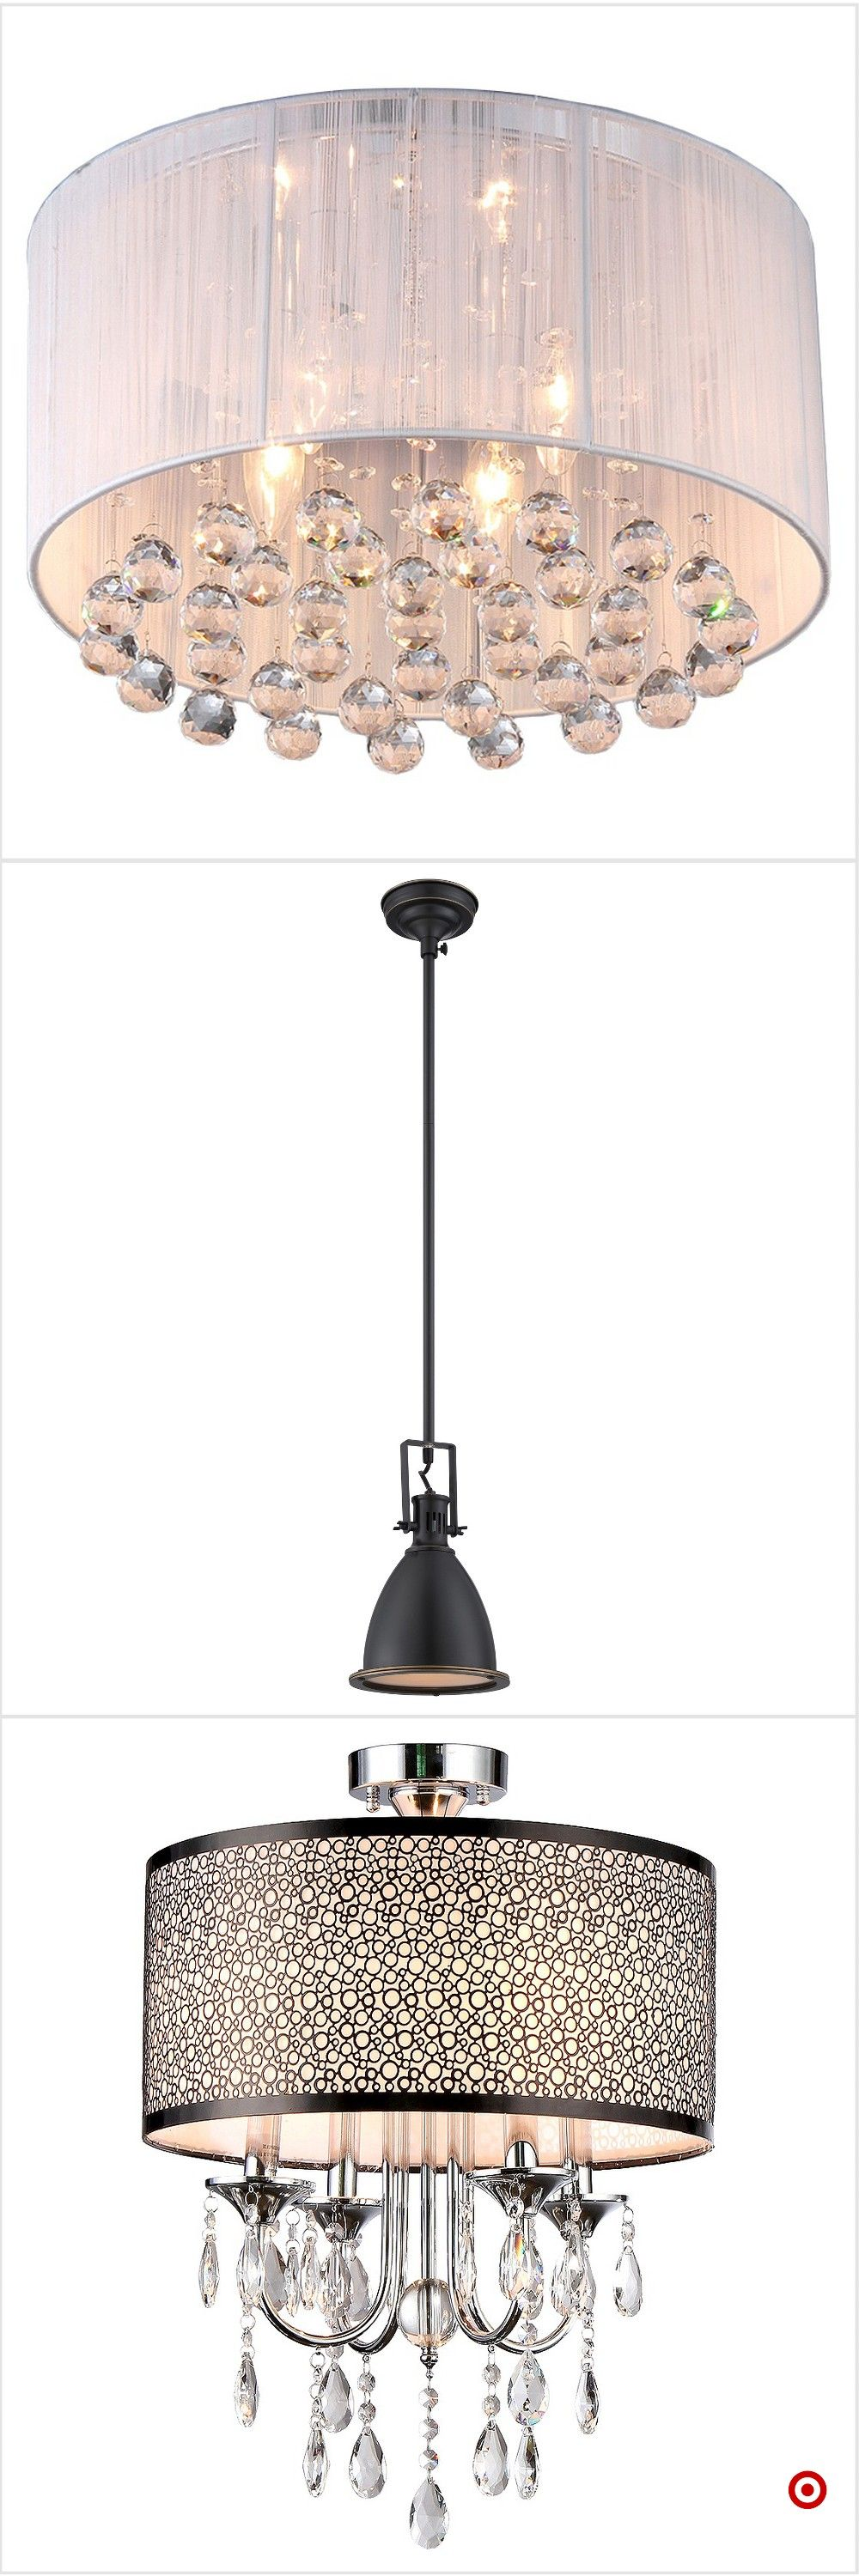 fans this laura reminds of elegant ceiling target have me ashley to i woodland light